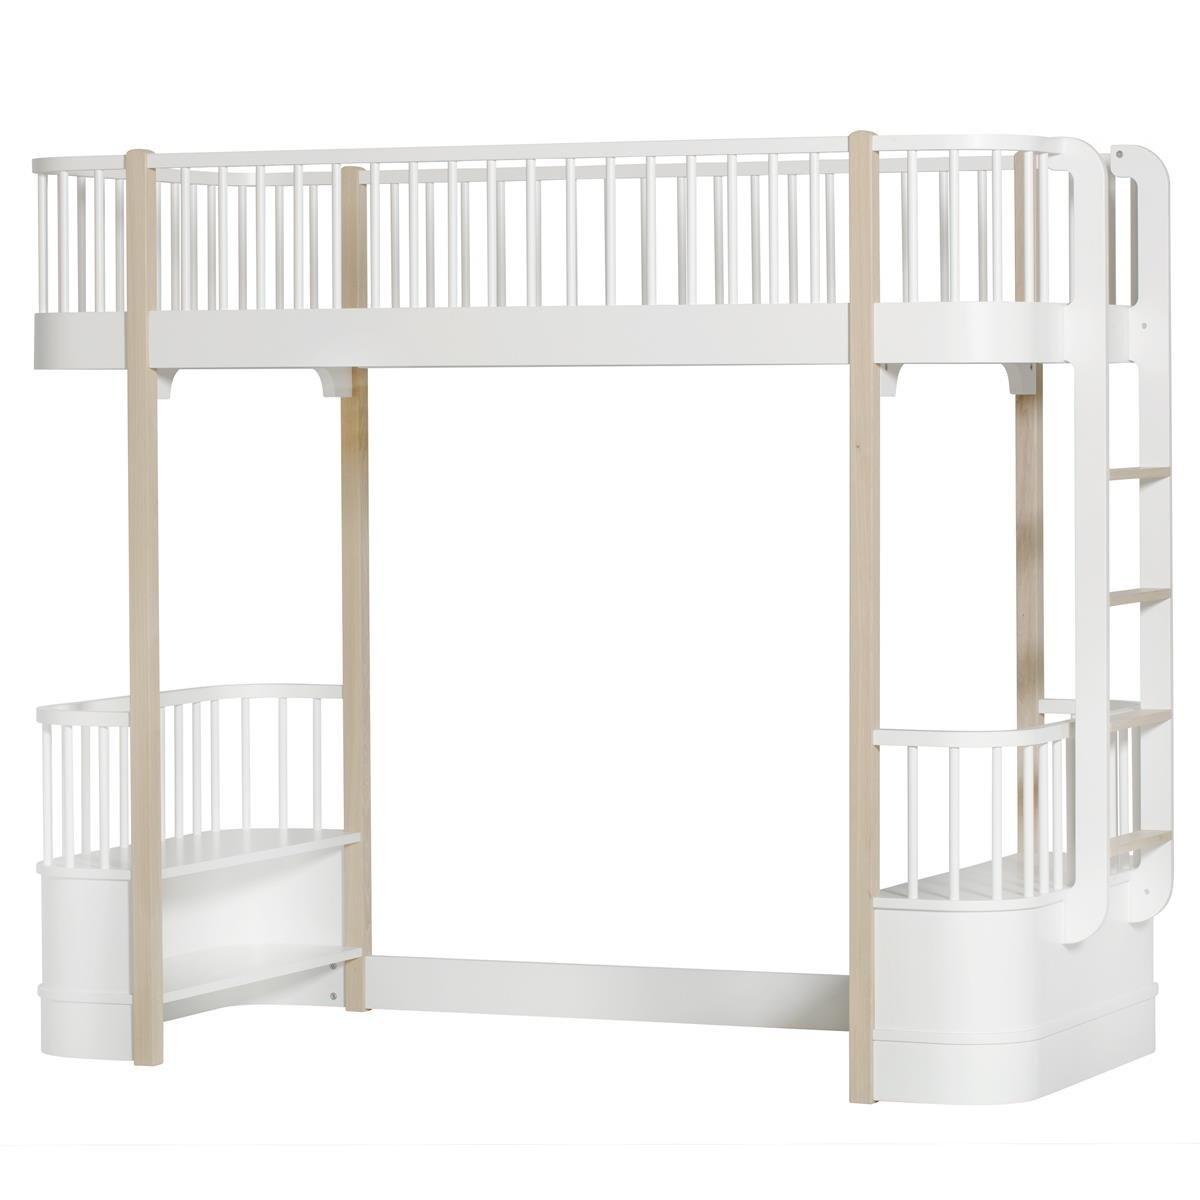 Oliver Furniture oliver furniture wood loft bed